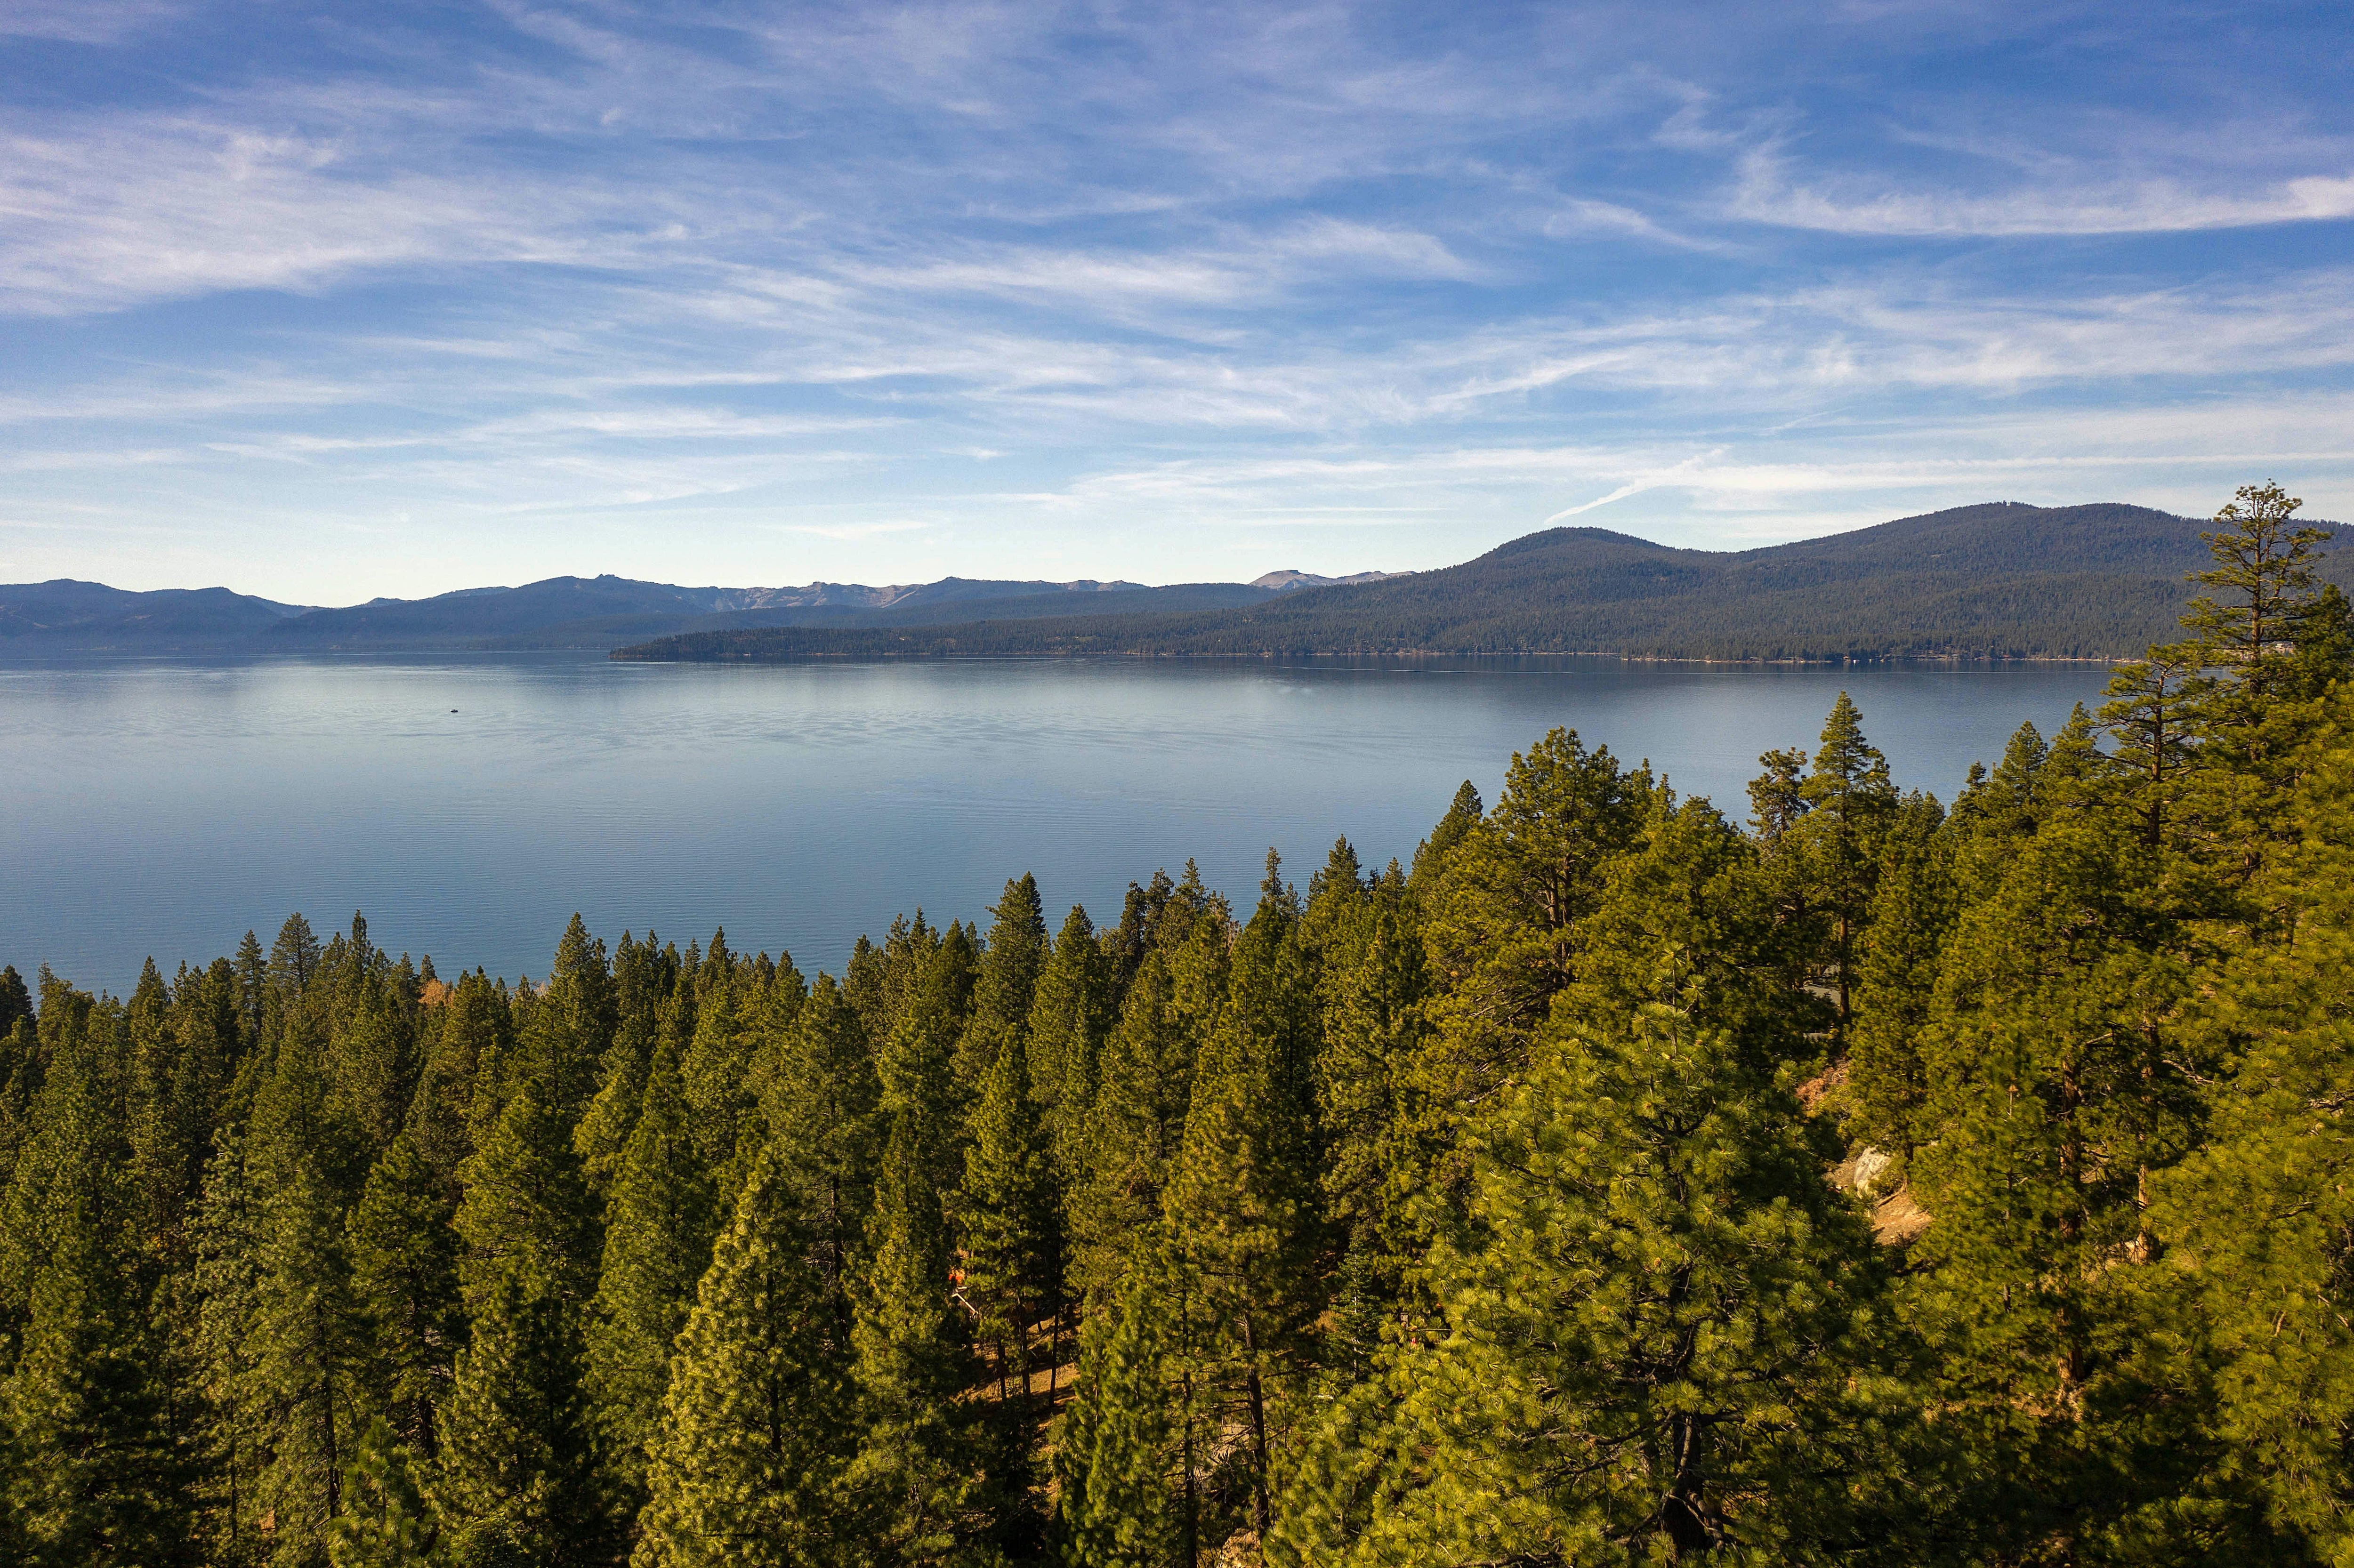 Walk to a gorgeous Tahoe beach from your rental in minutes.